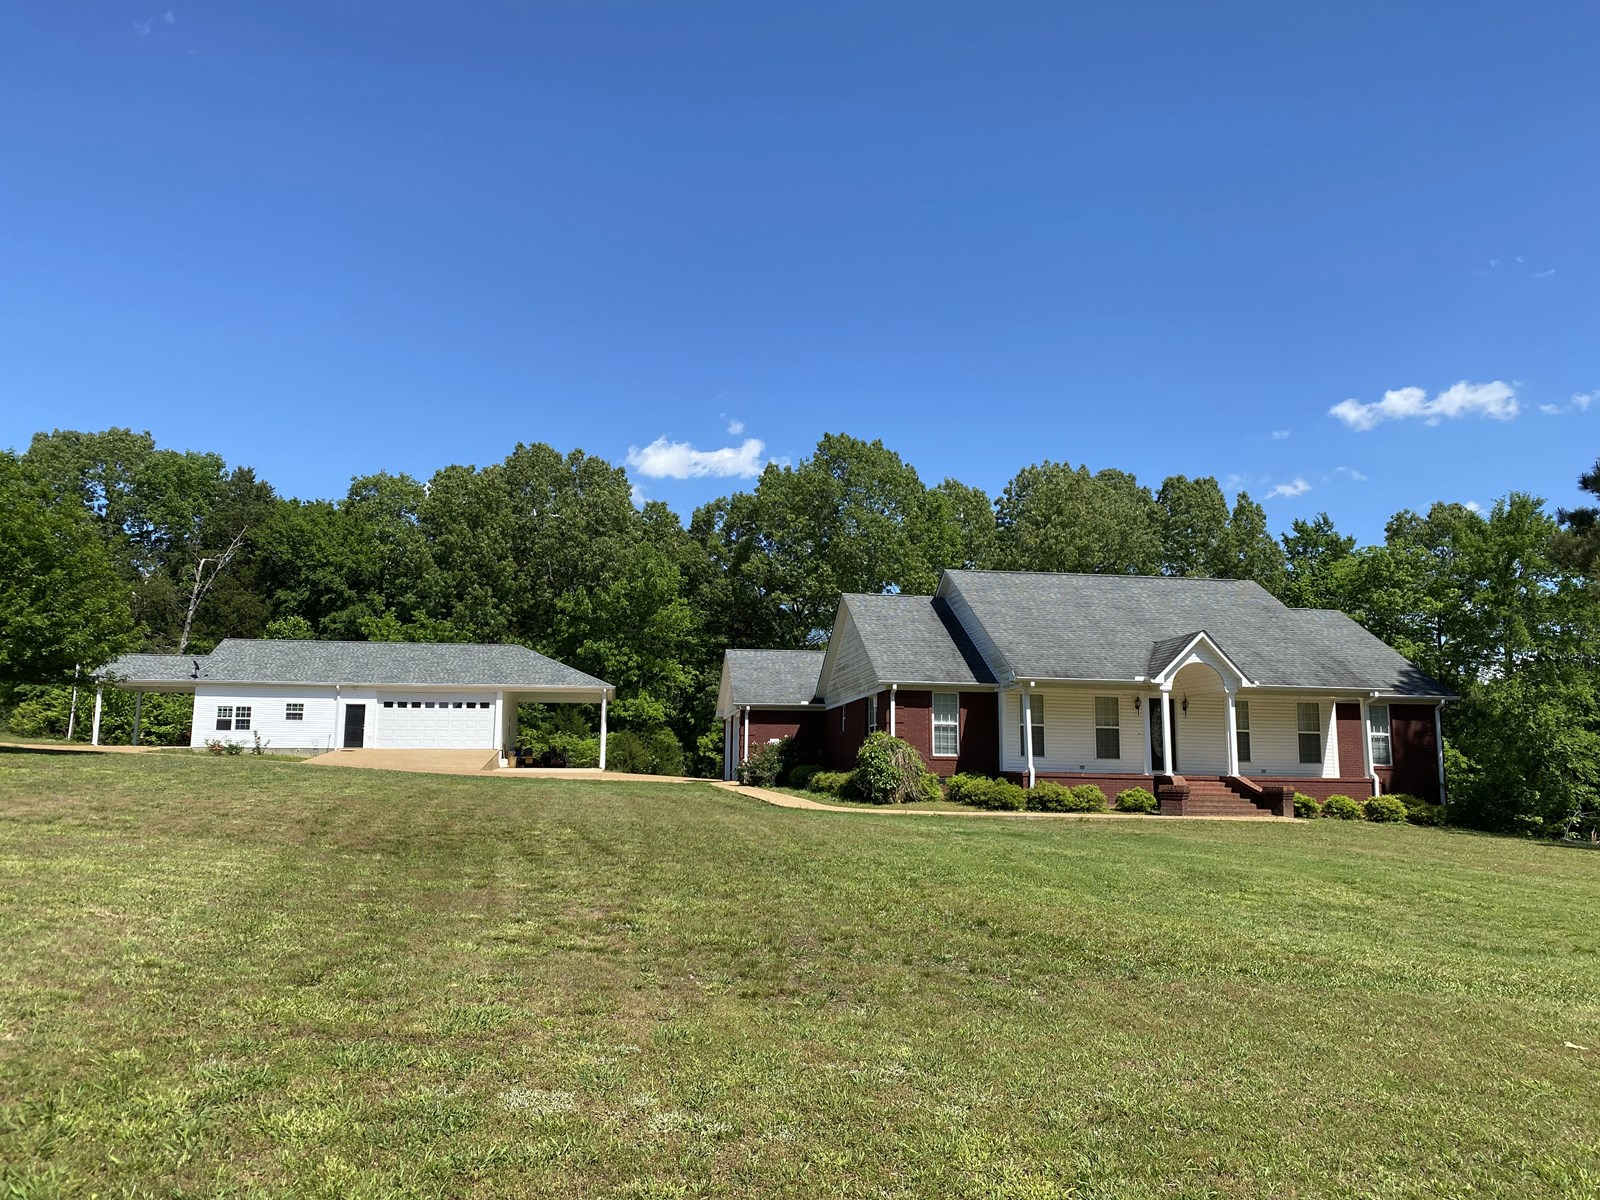 3 BEDROOM HOME ADAMSVILLE, TN FOR SALE, SHOP & GUEST HOUSE